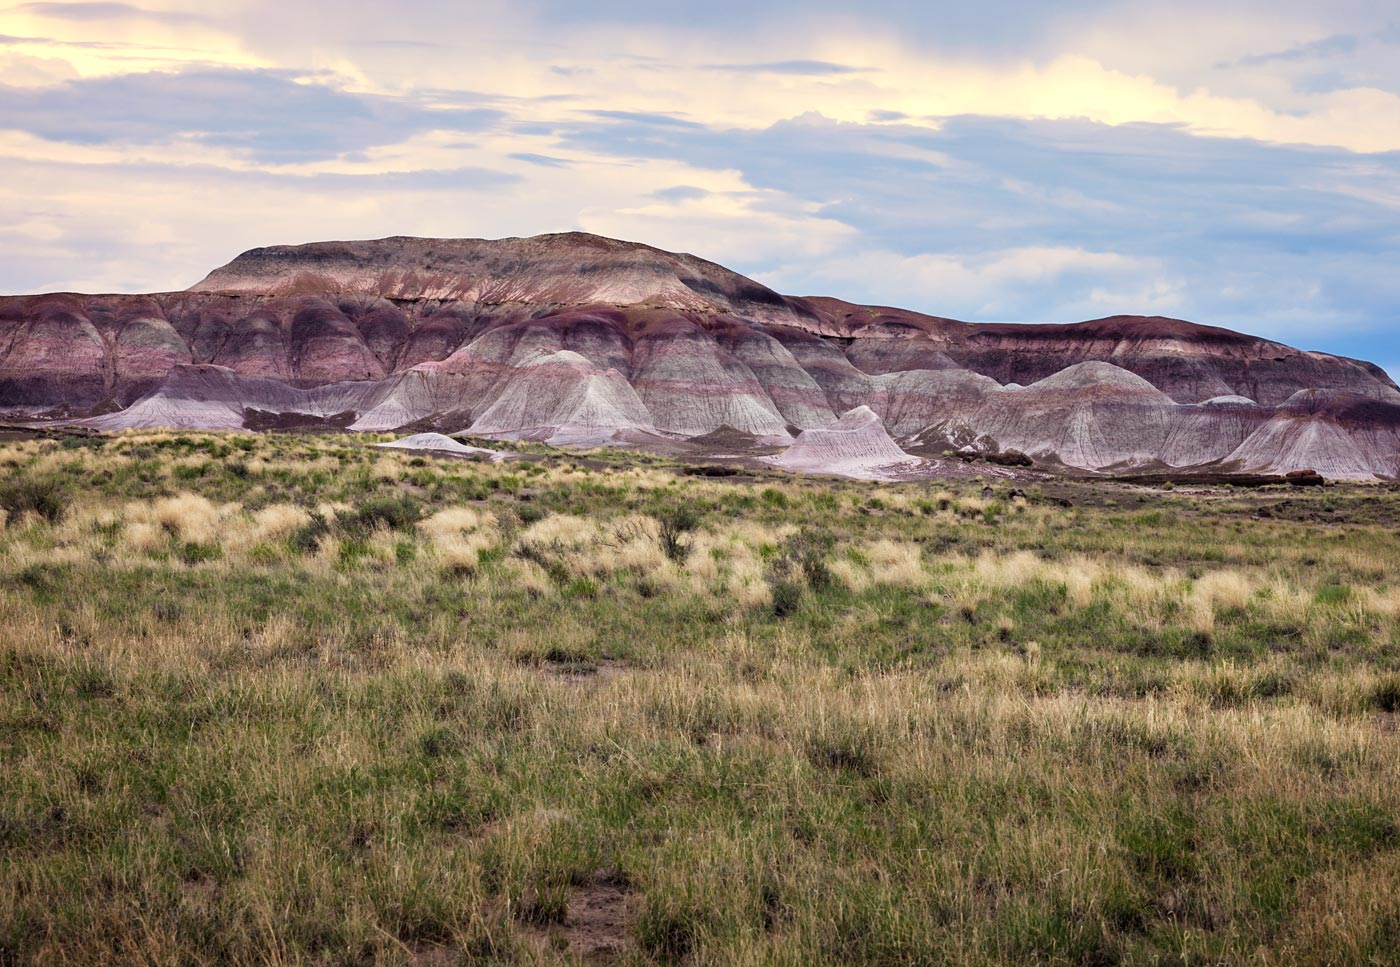 Petrified-Forest-National-Park-ABP-Grassland_Strata.jpg